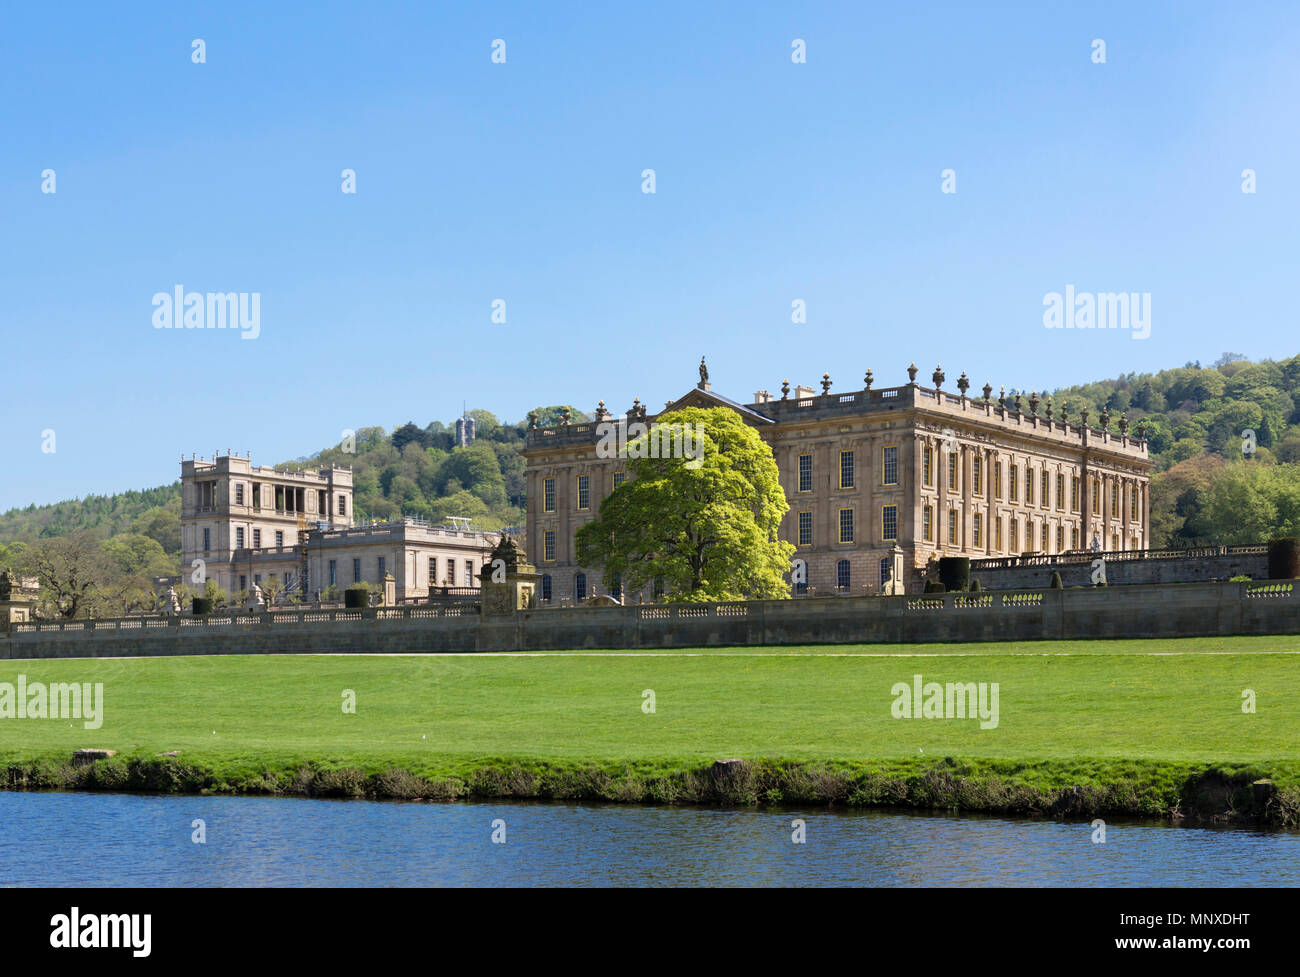 Chatsworth House from the banks of the River Derwent, Chatsworth Park, Derbyshire, England, UK - Stock Image